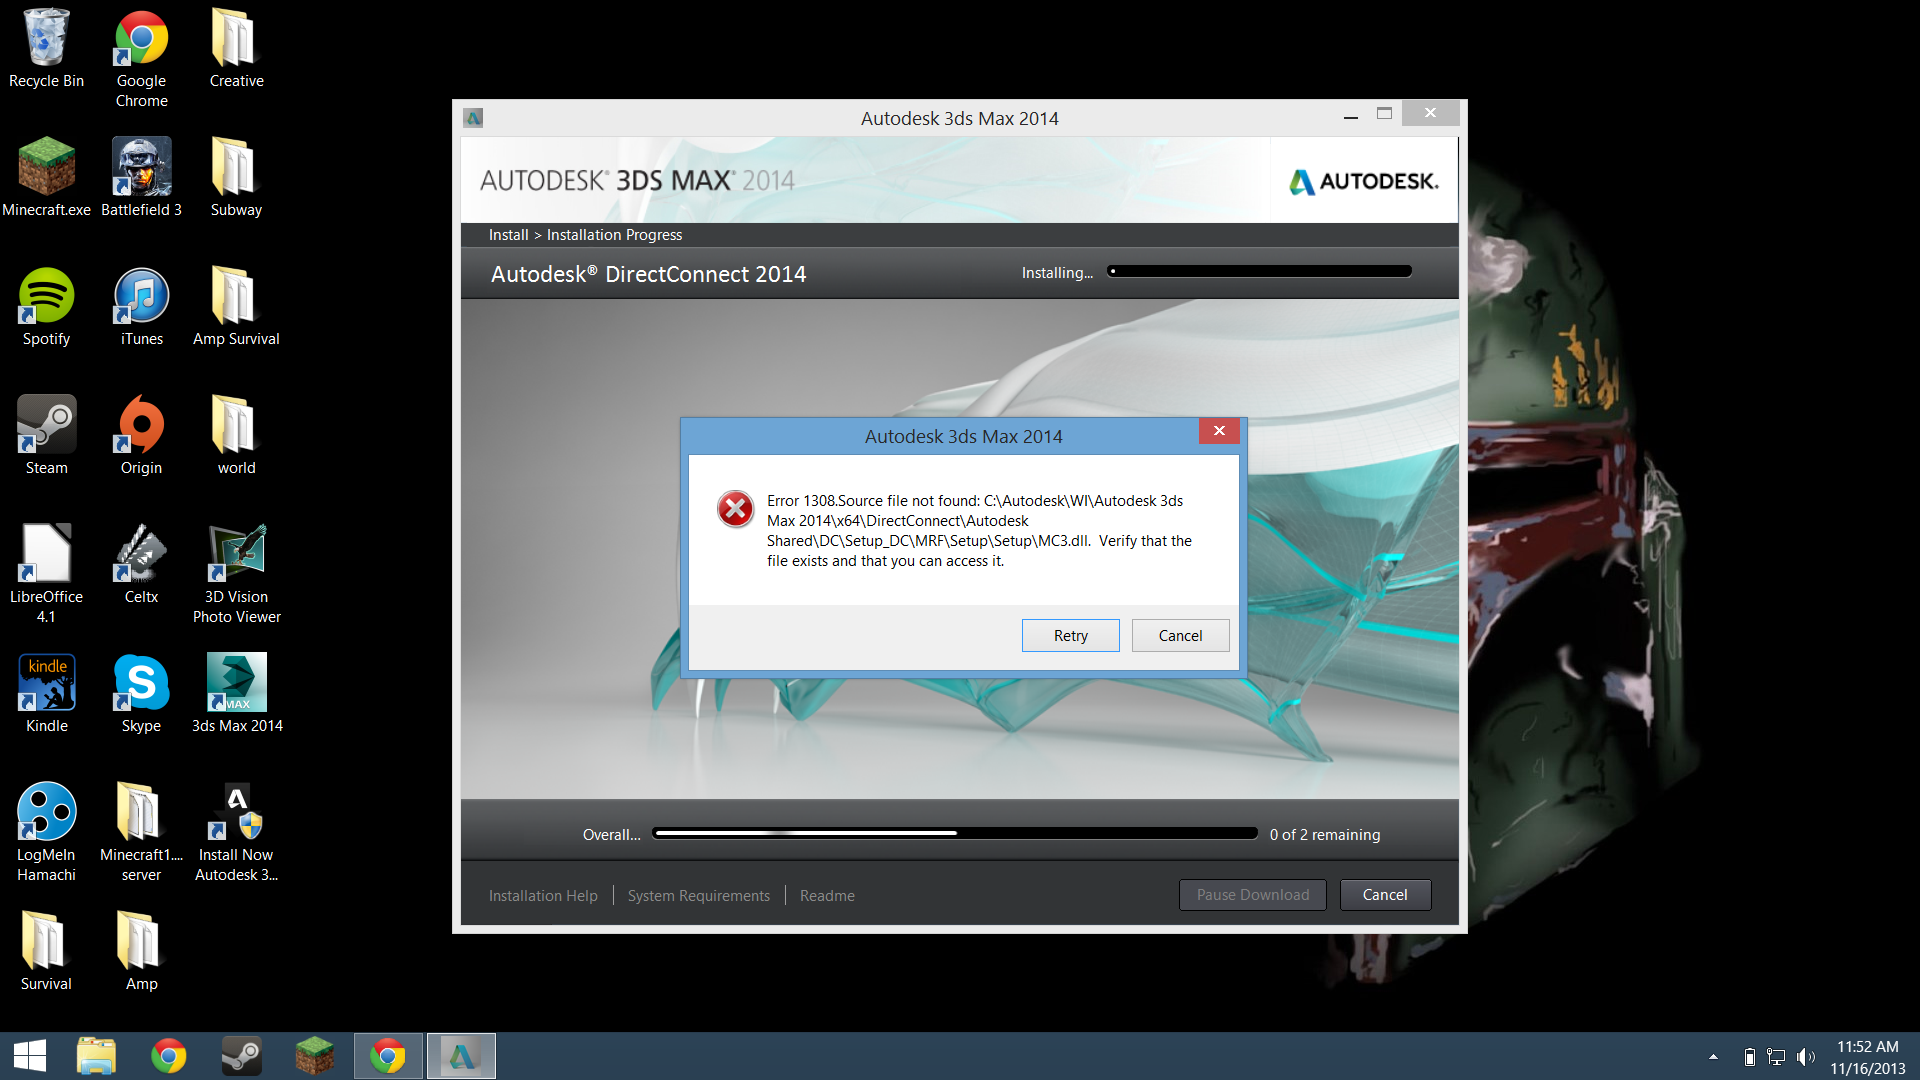 Direct connect 2014 install error when installing 3ds max 2014 autodesk community